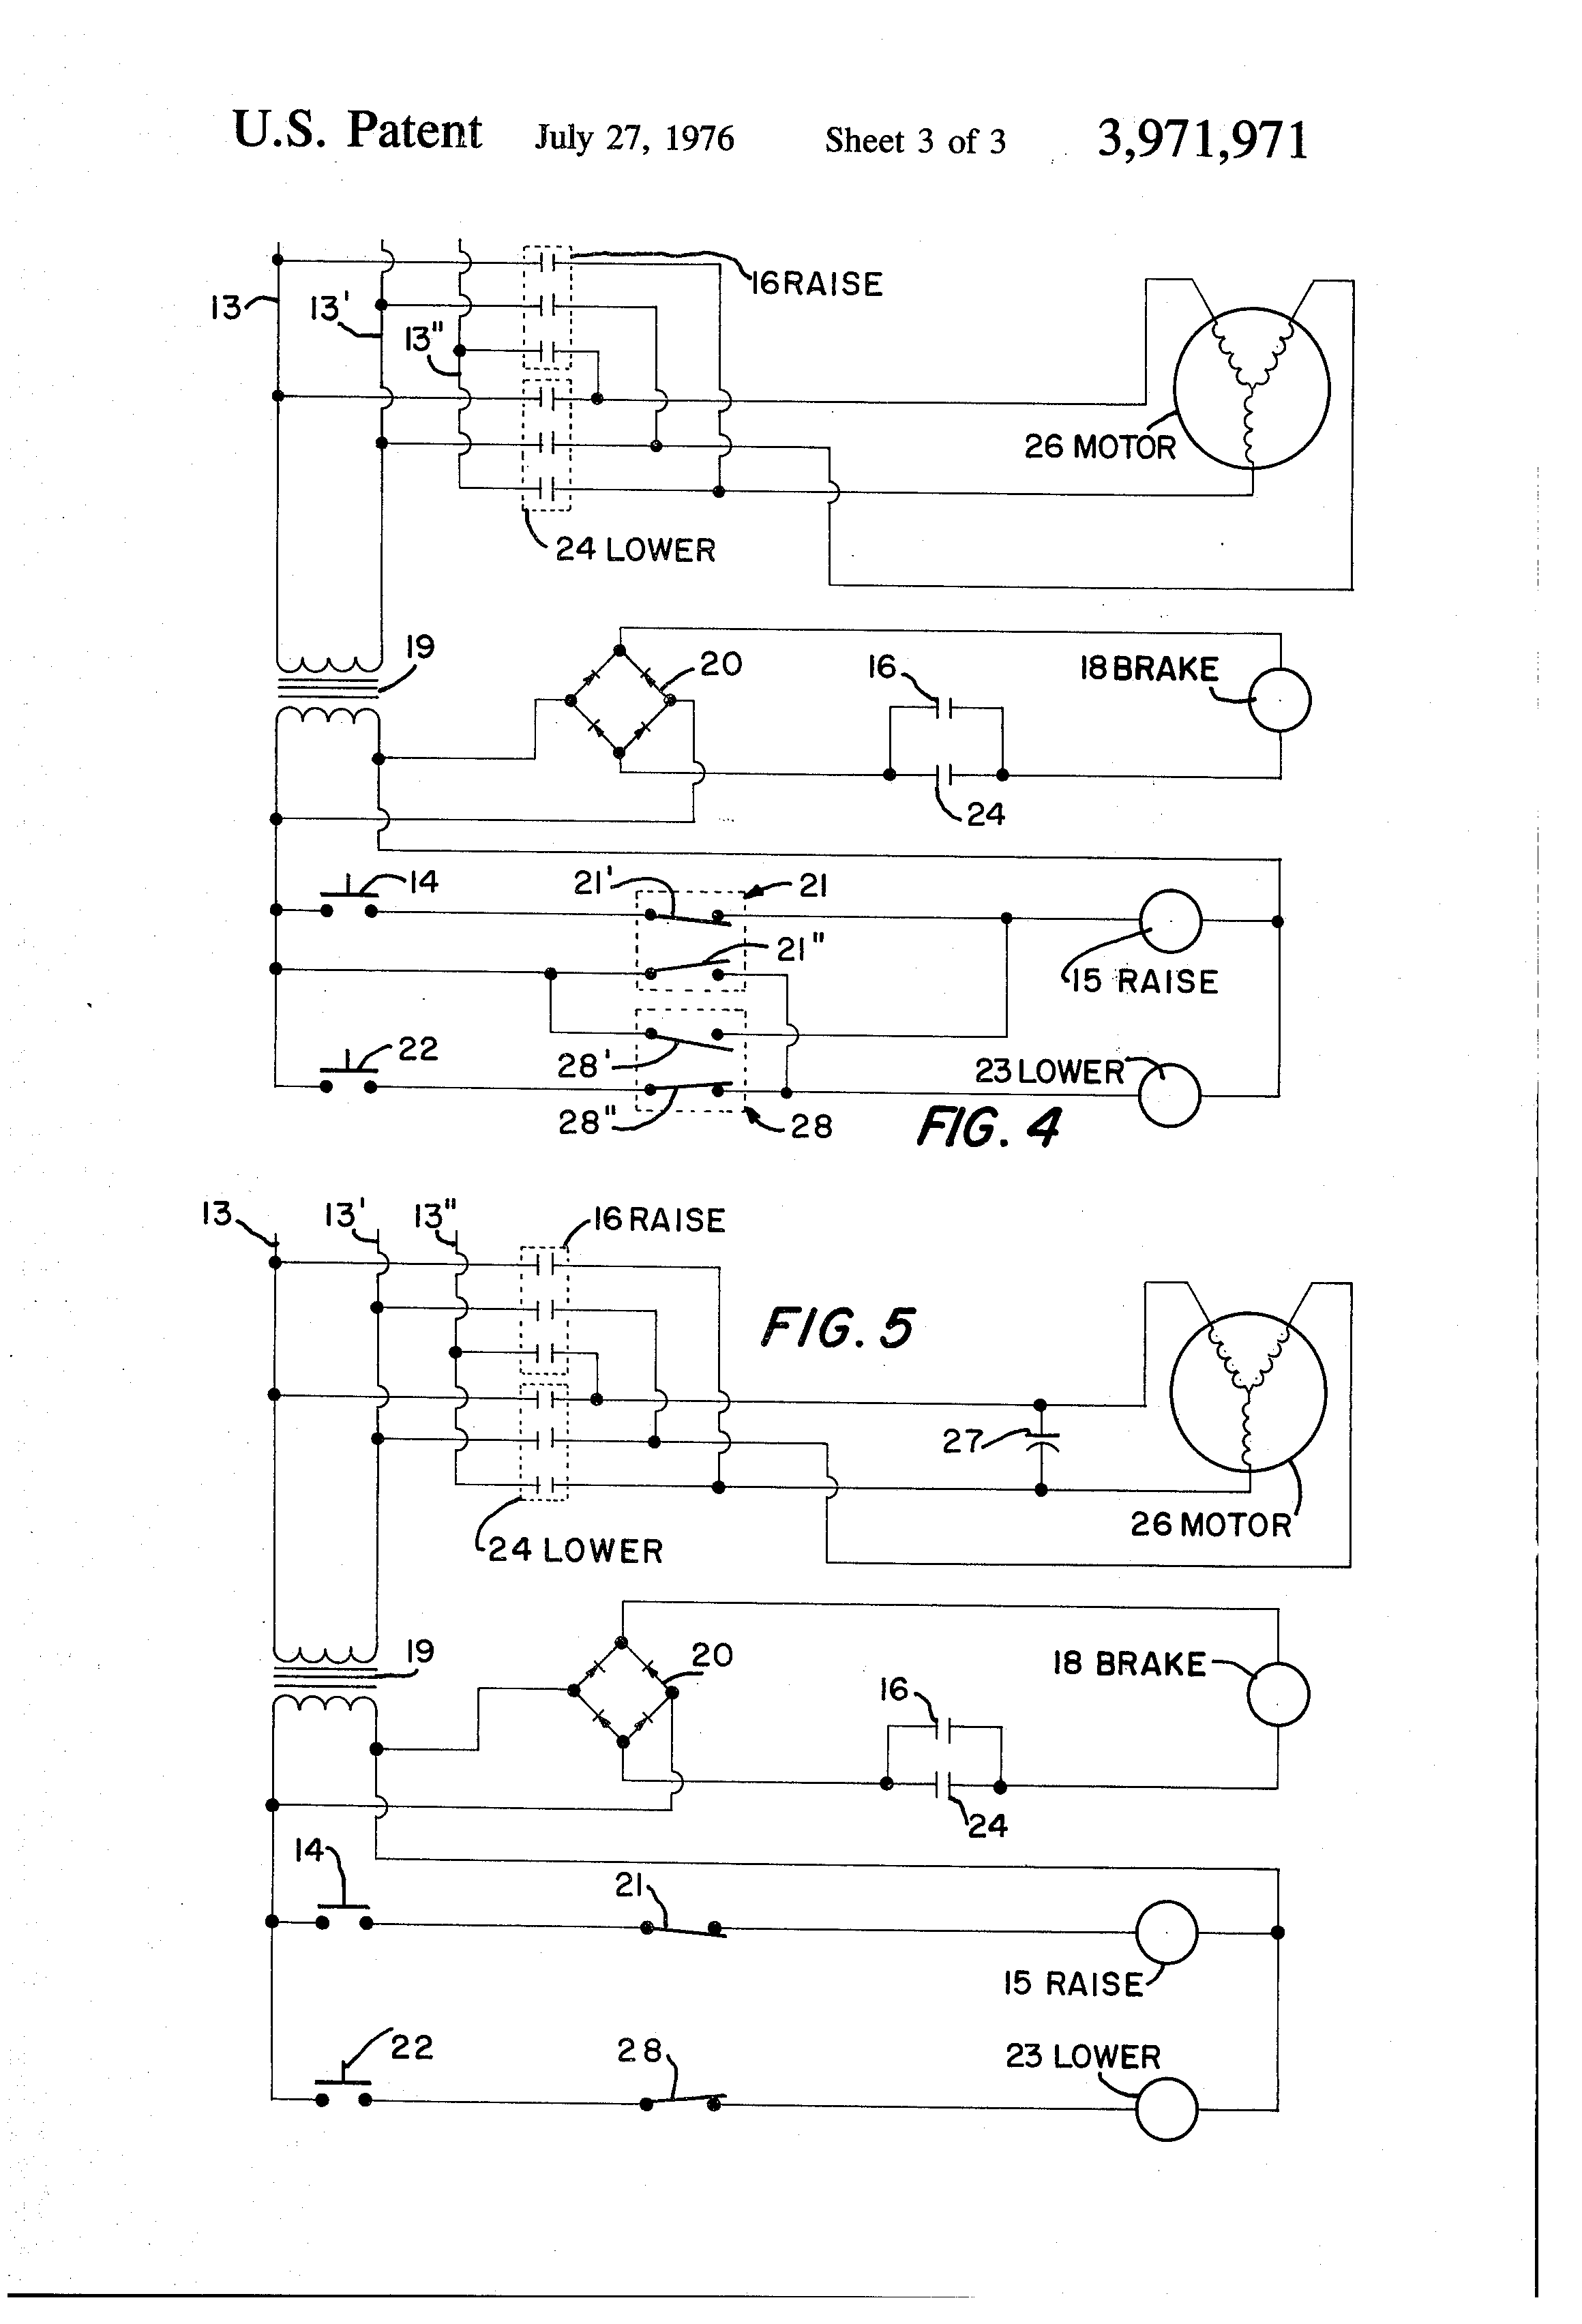 US3971971 3 stahl hoist wiring diagram efcaviation com boat hoist usa wiring diagrams at soozxer.org